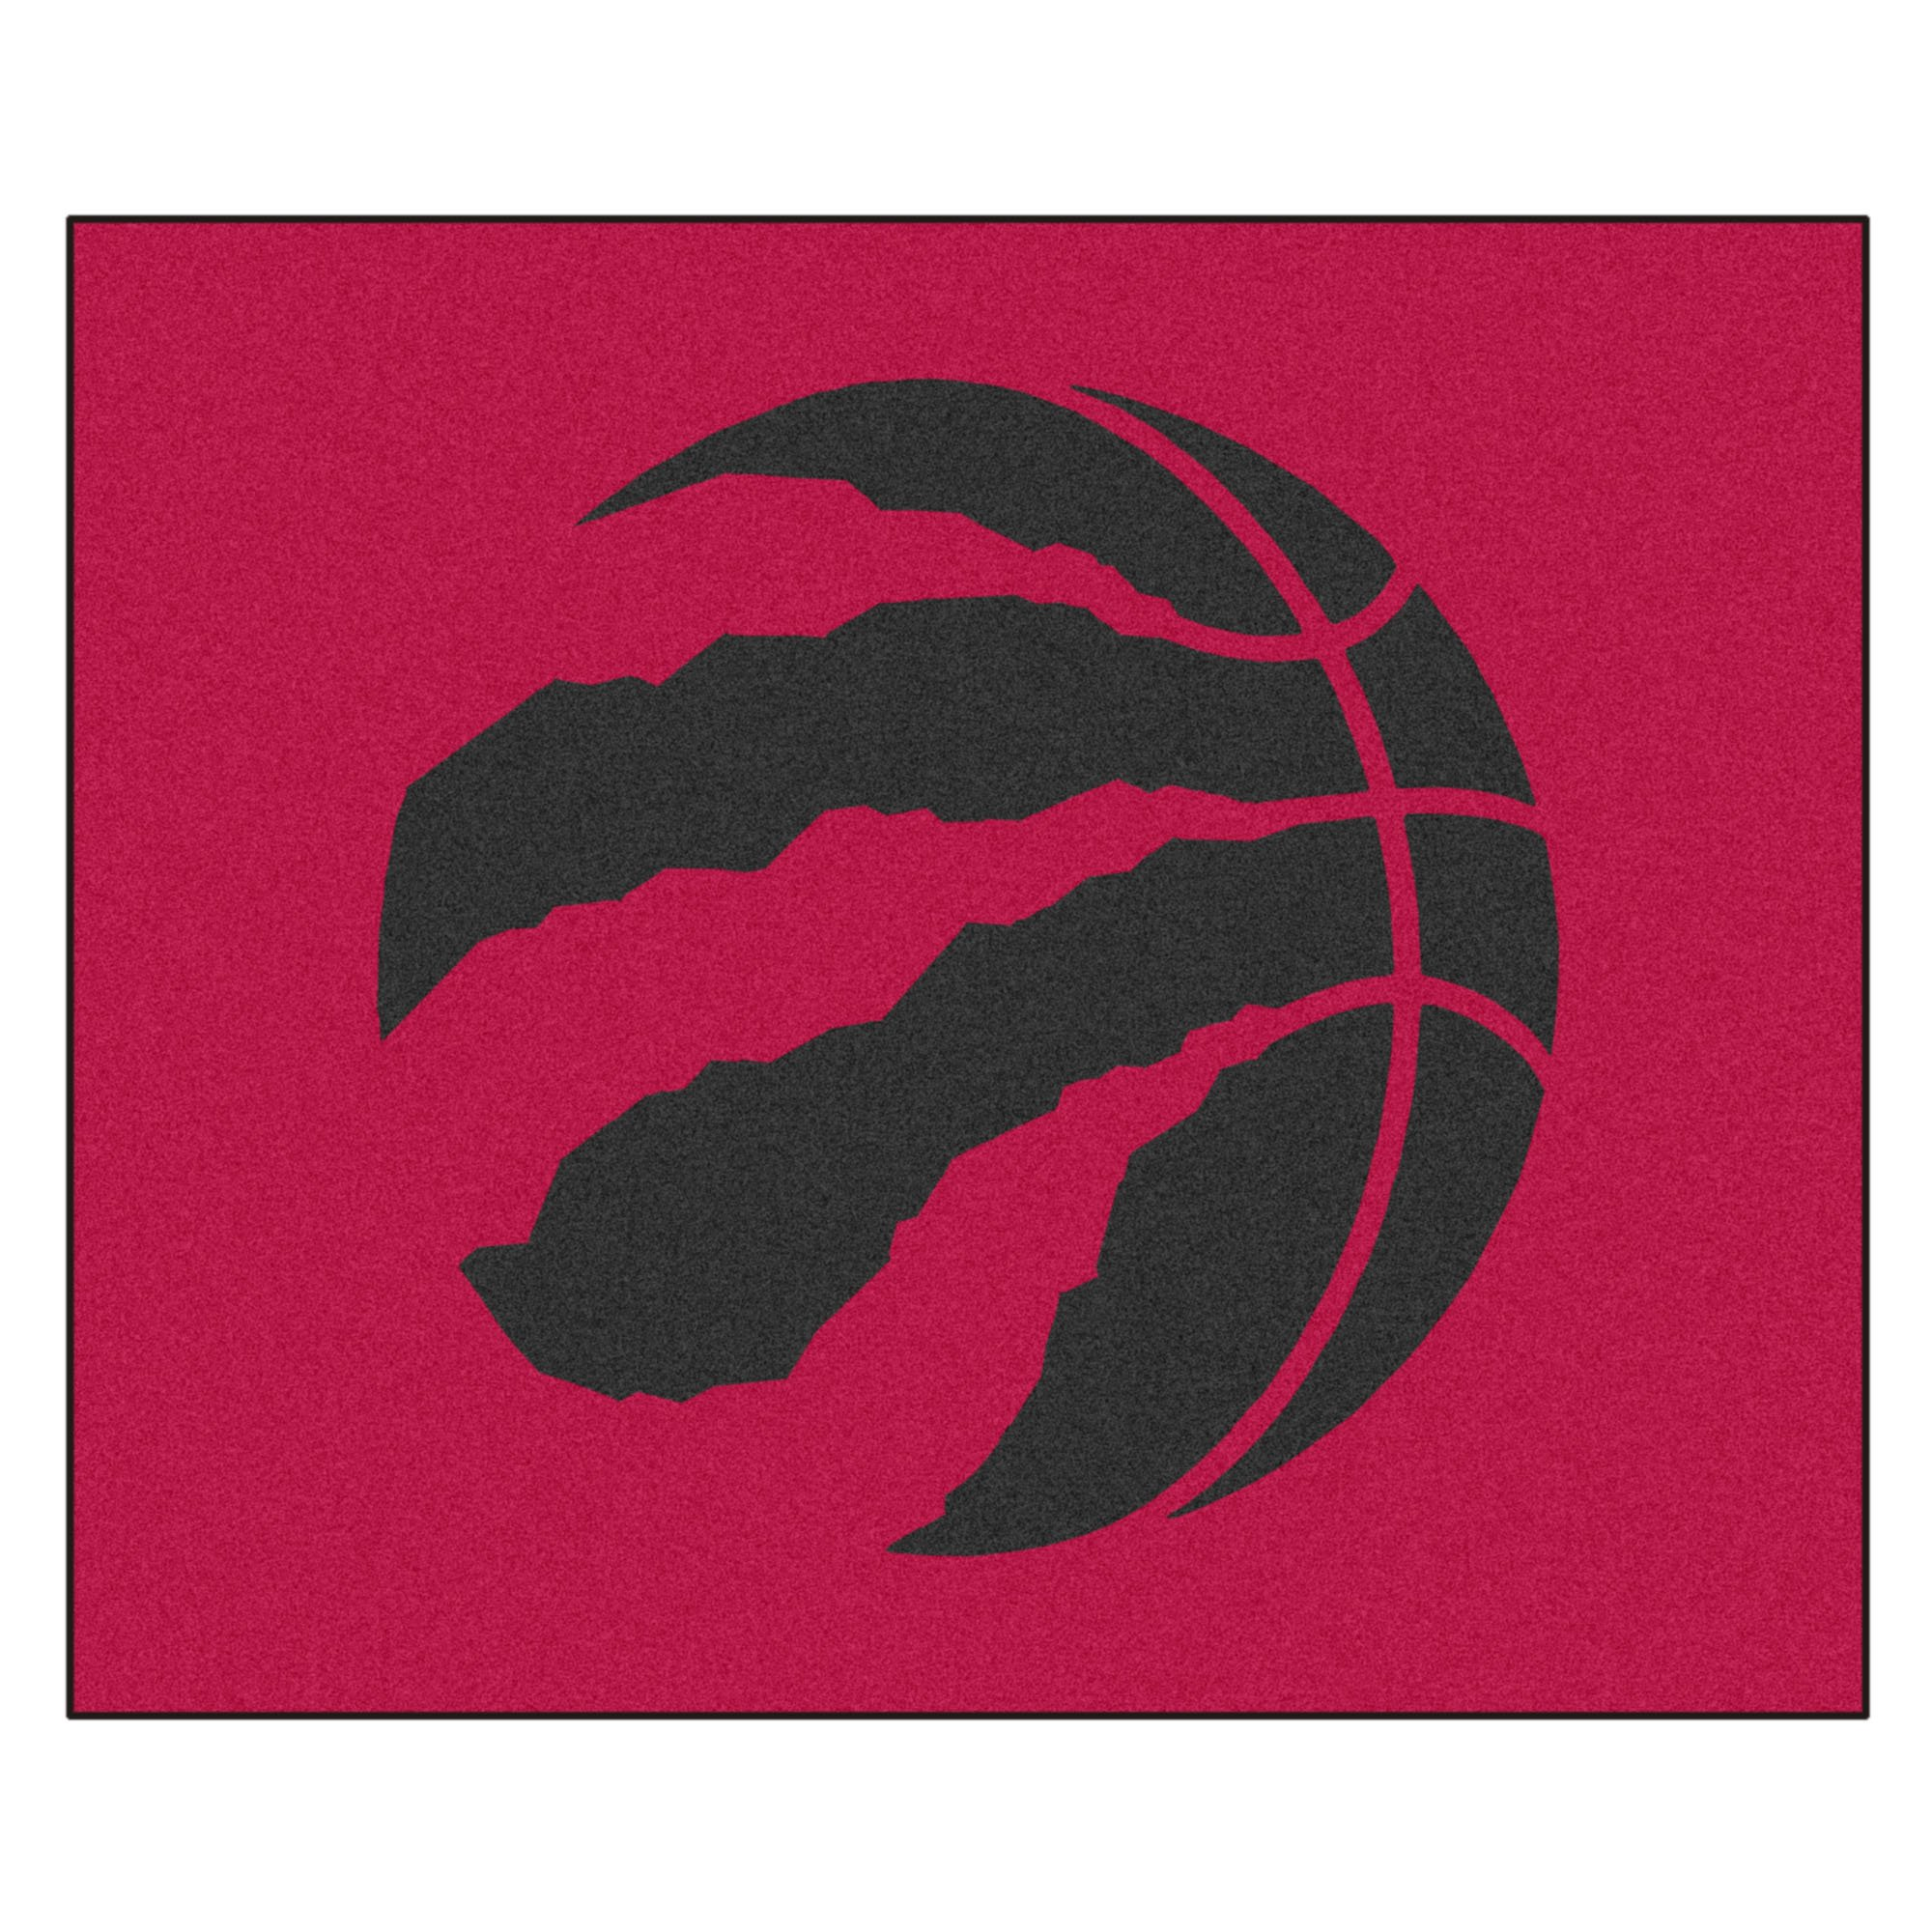 FANMATS 19478 NBA - Toronto Raptors Tailgater Rug , Team Color, 59.5''x71''